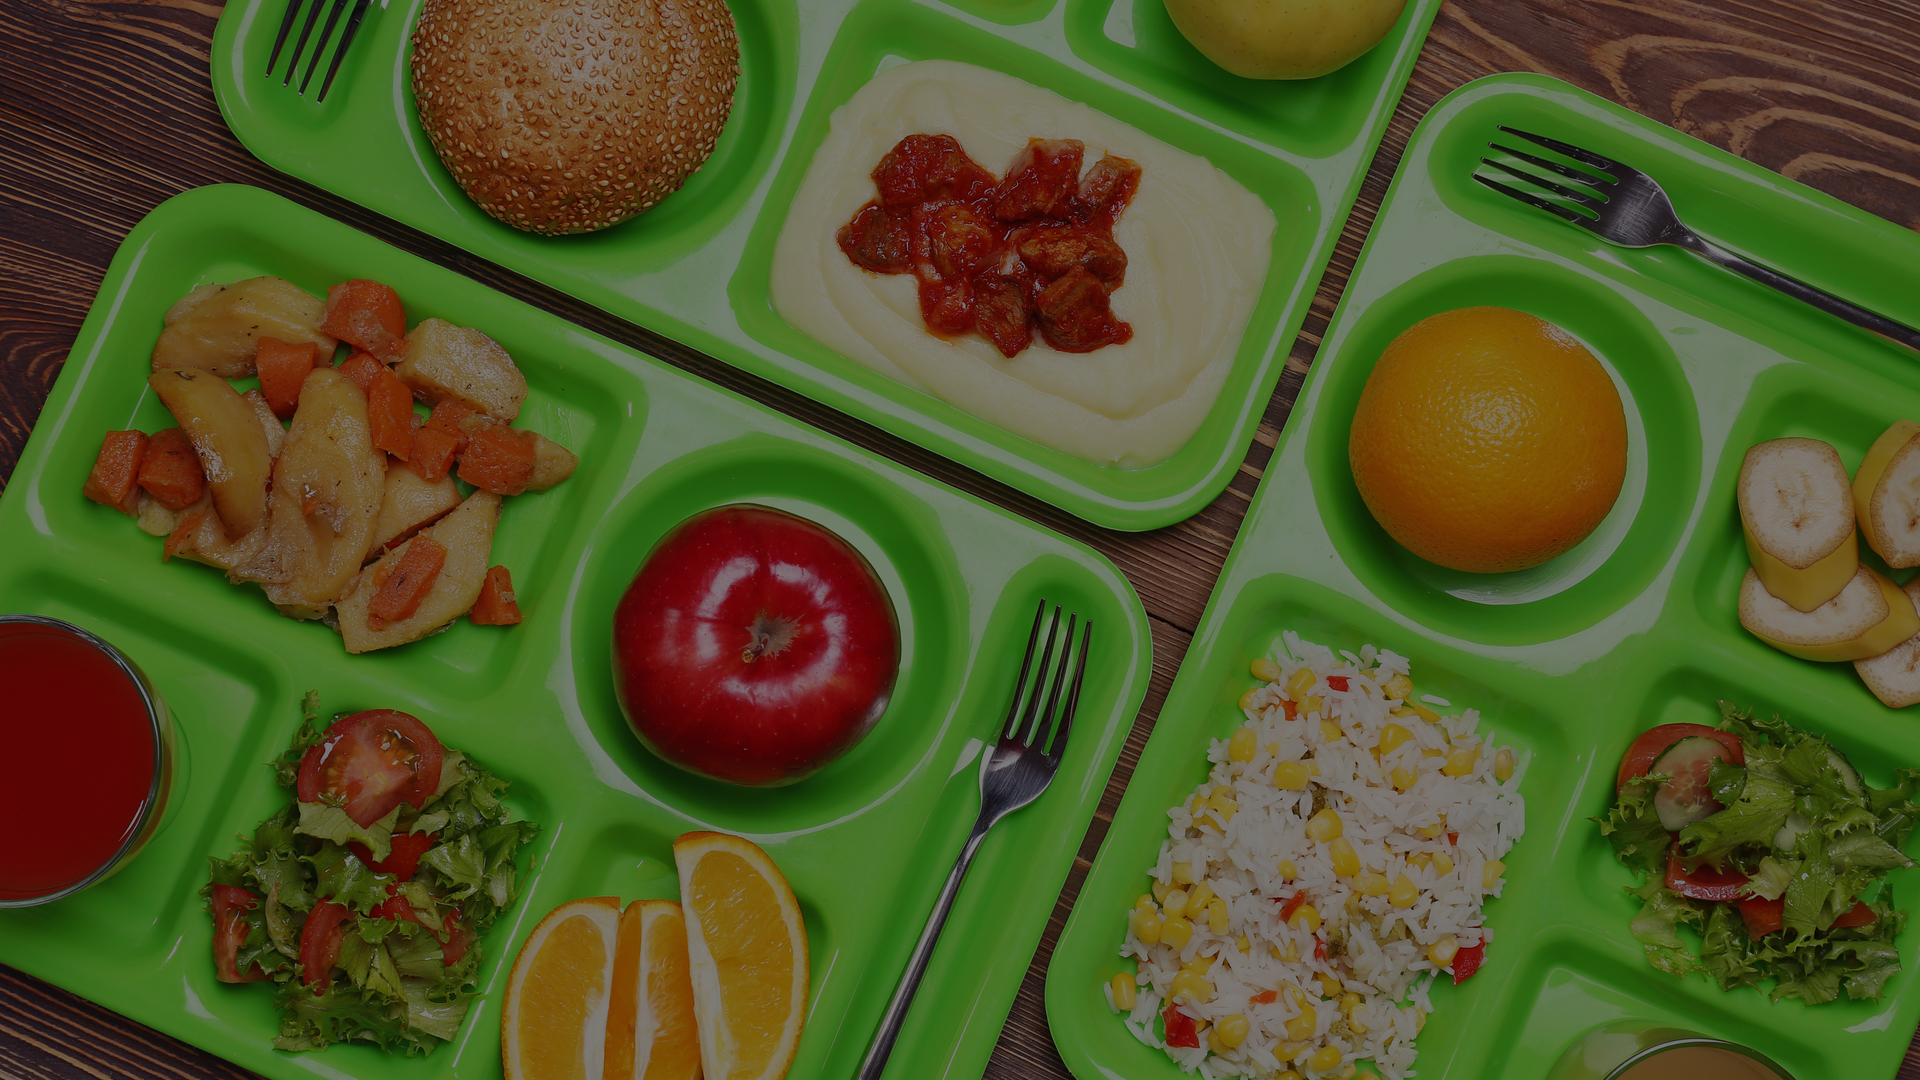 Food Crime: Is Your School Cafeteria Off the Hook?